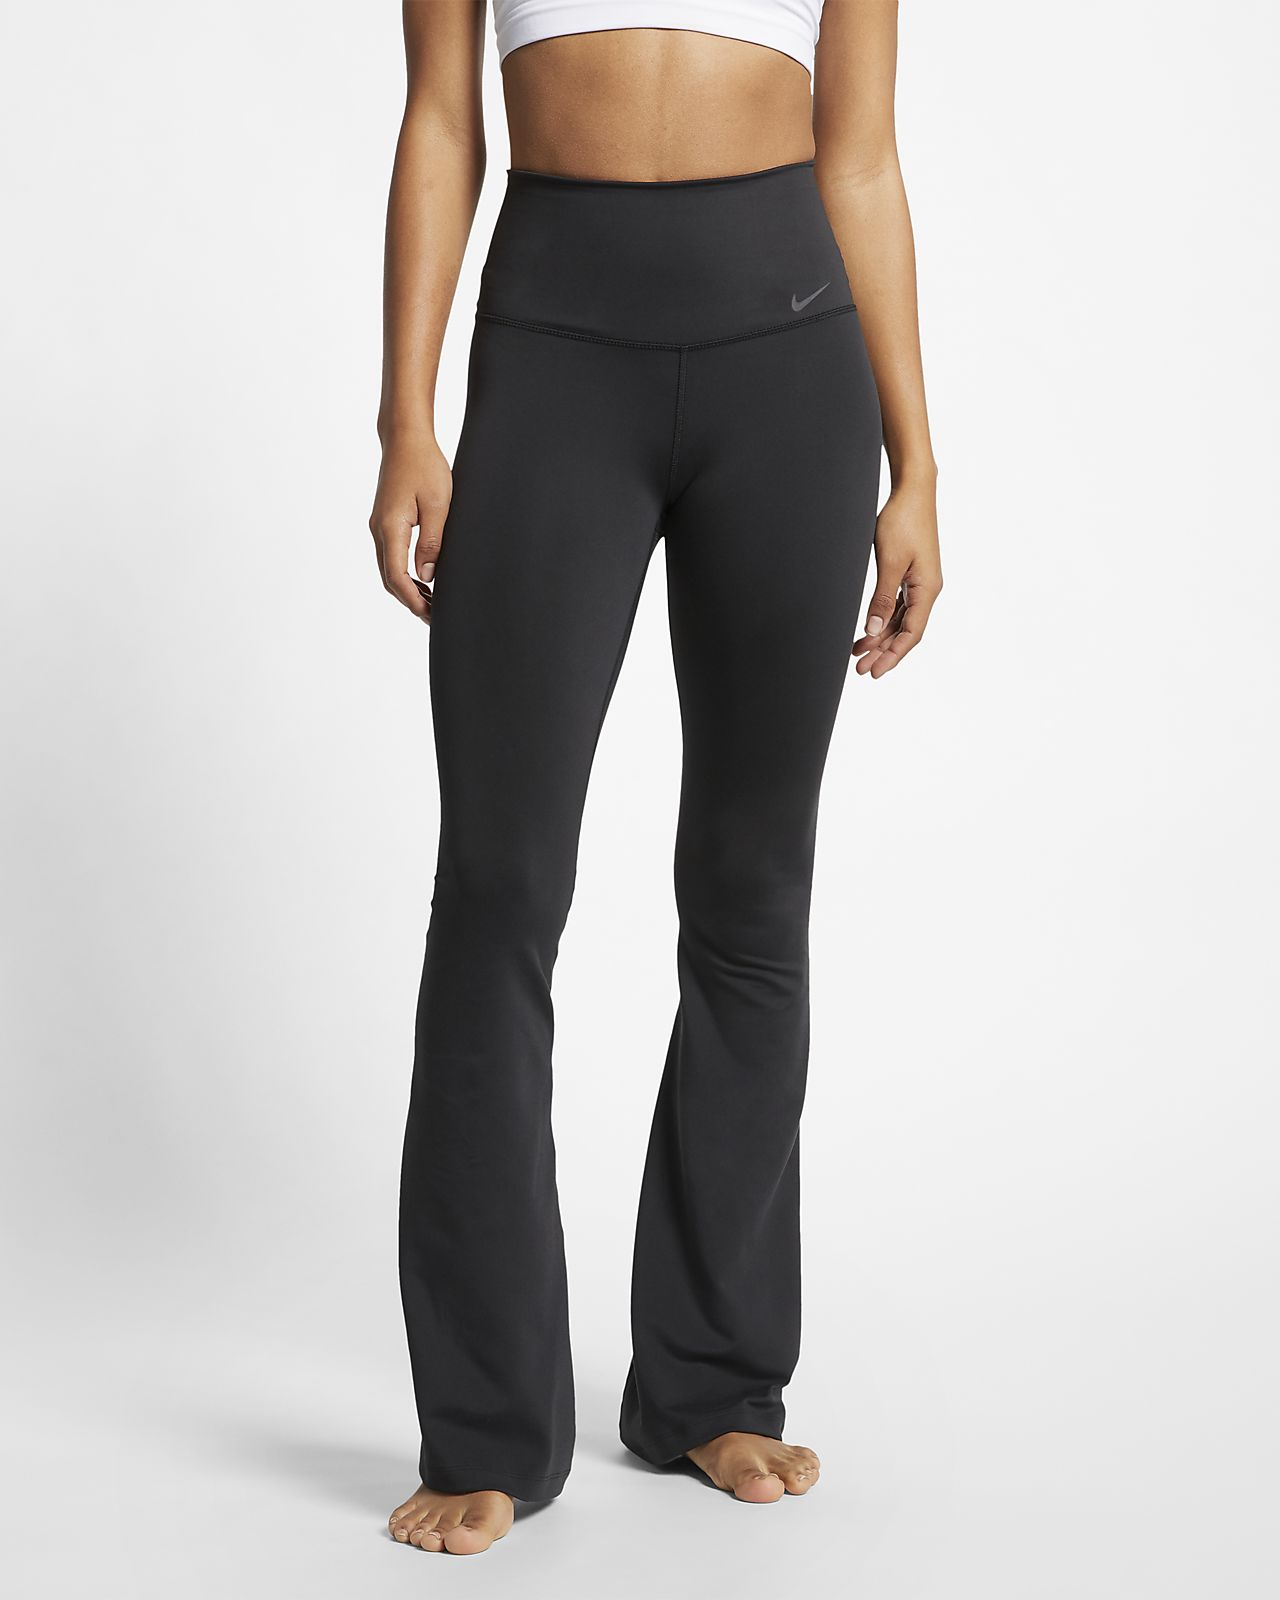 Legging de training Nike Power Dri-FIT pour Femme